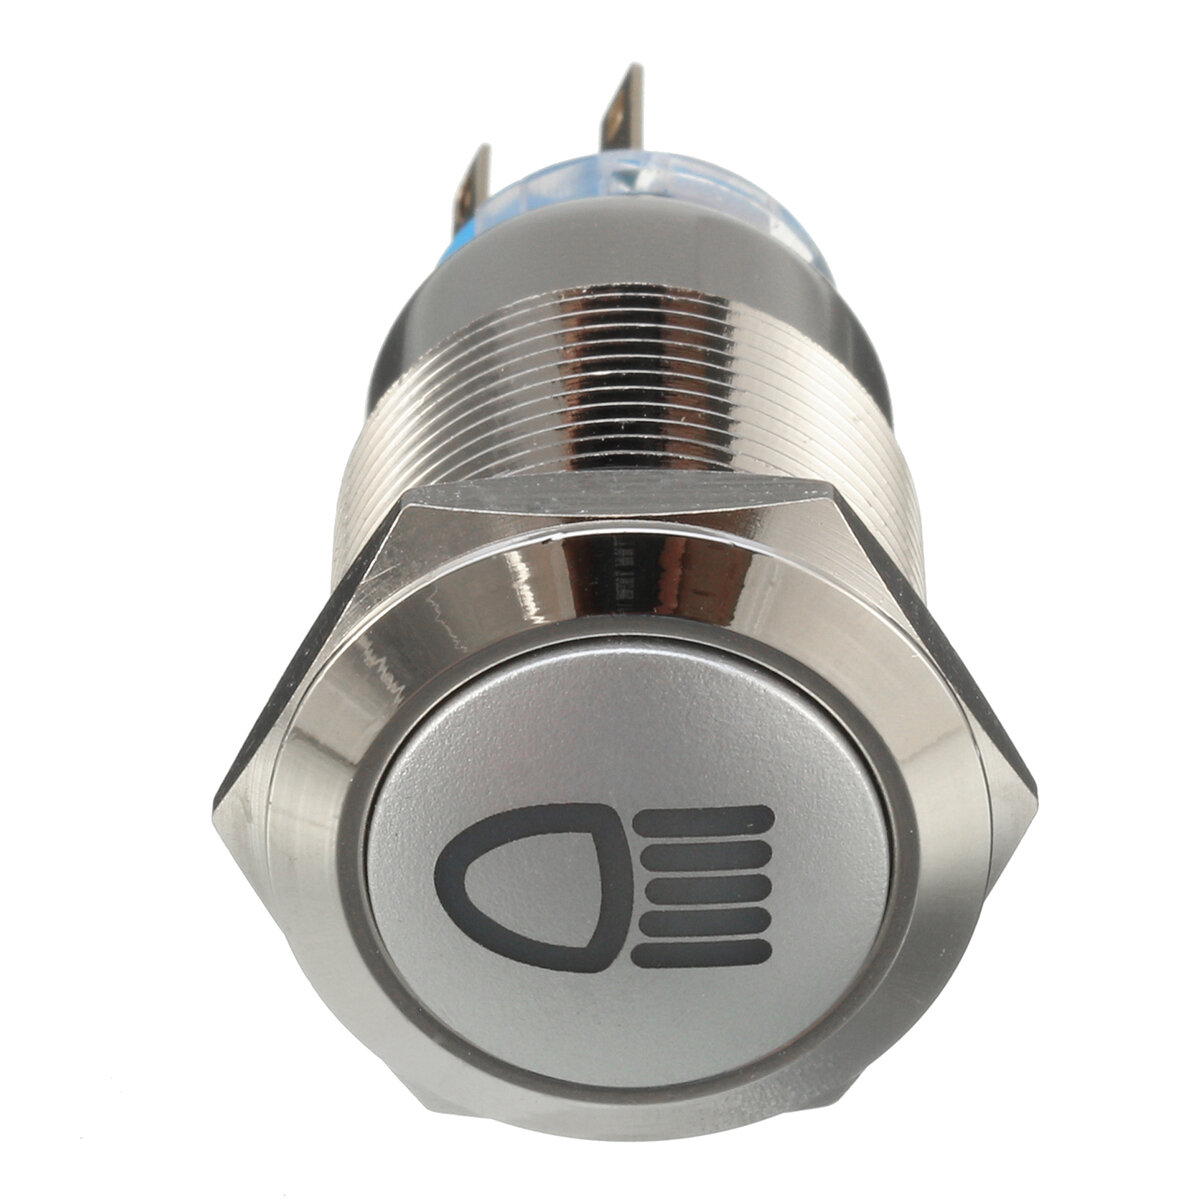 12V 19mm Perak Logam LED Push Button ON OFF Latching Beralih Simbol Cahaya